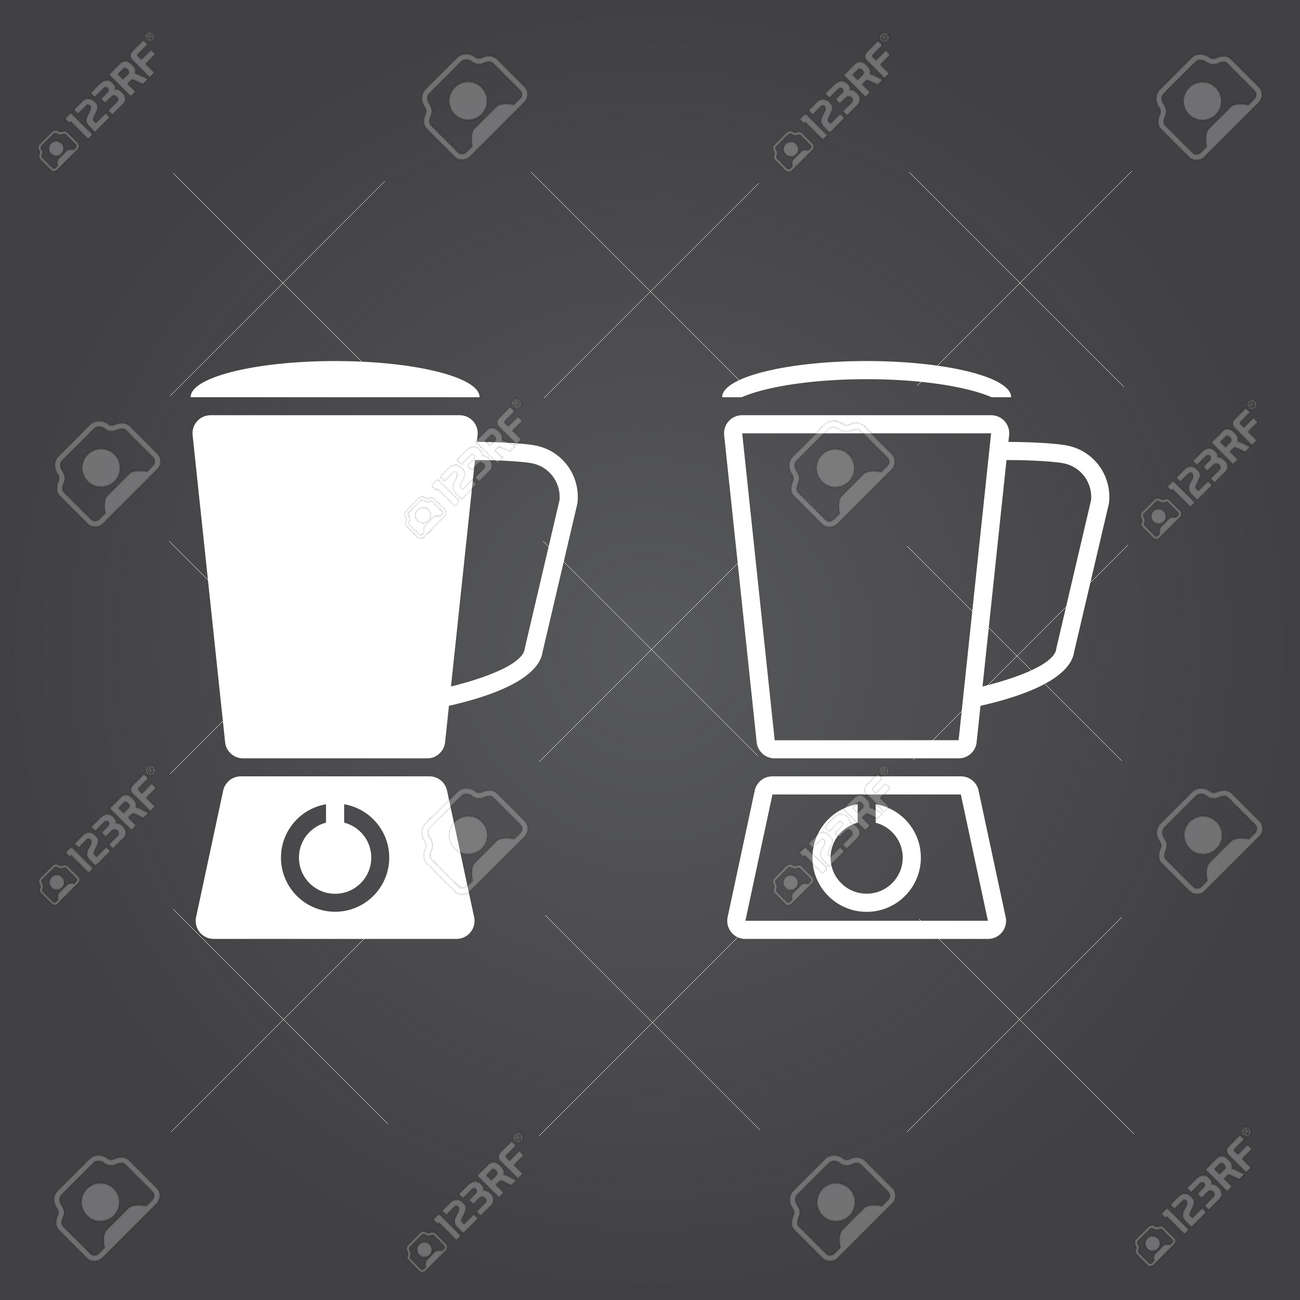 blender icon  Solid and Outline Versions  White icons on a dark